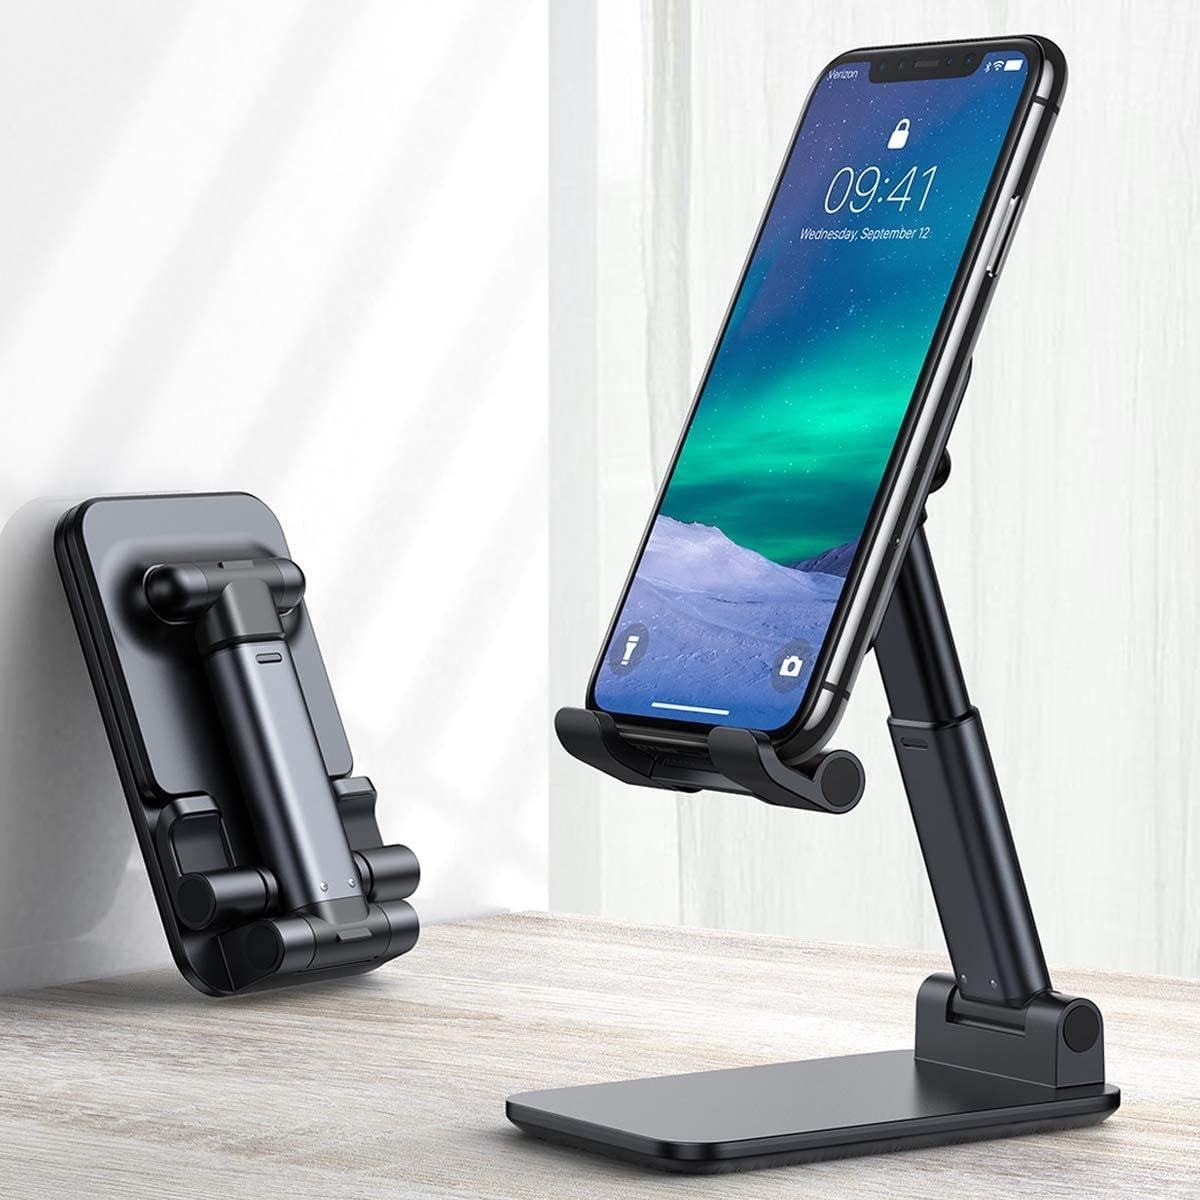 Cell Phone Stand, Innoo Tech Foldable Portable Desktop Stand Adjustable Height and Angle Phone Holder for Desk Sturdy Aluminum Metal Stand